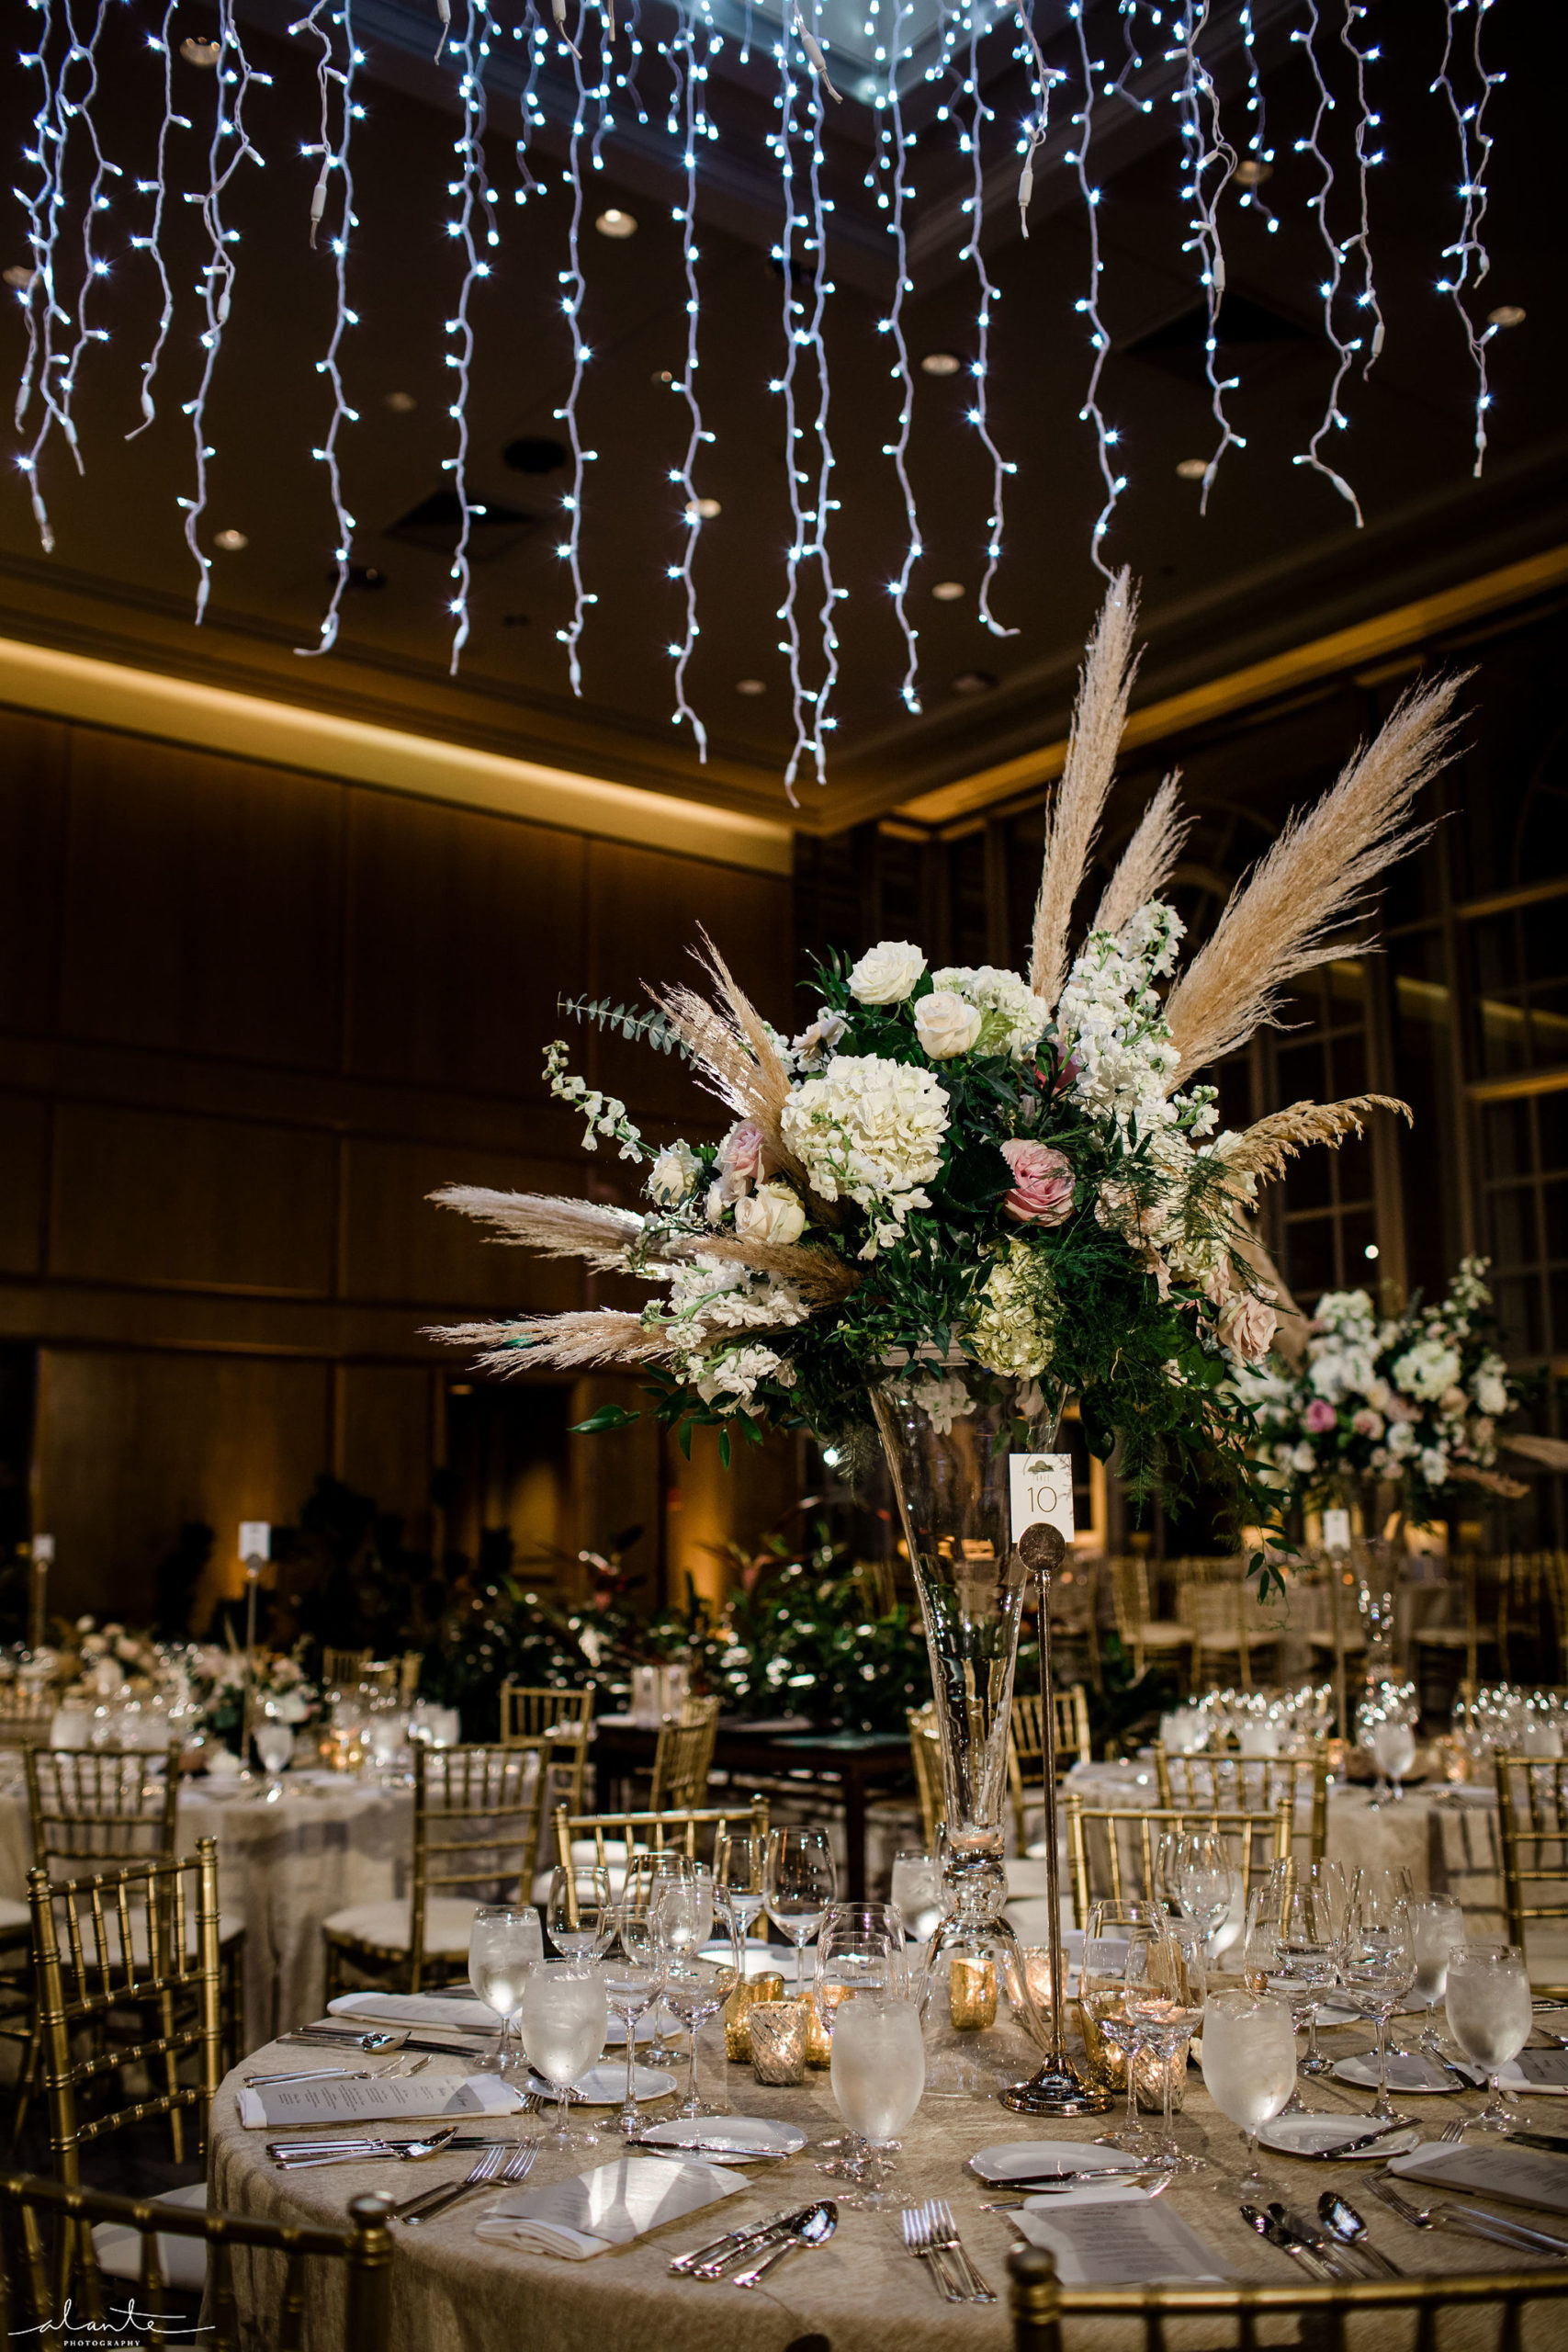 Pampas grass wedding winter reception with tall centerpieces of white and mauve floral with pampas grass.